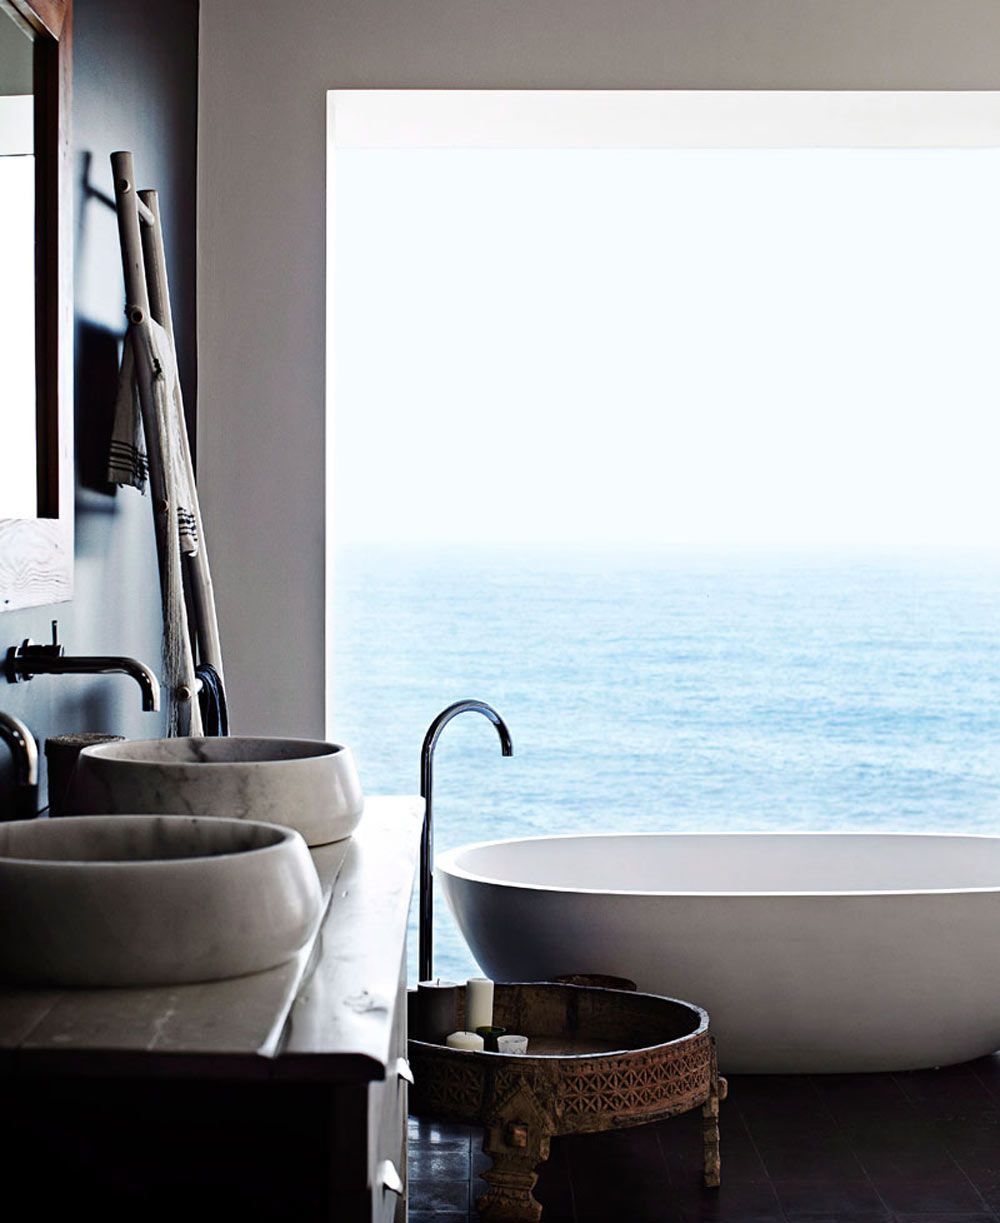 oracle, fox, sunday, sanctuary, bath, tub, ocean, view, interiors ...